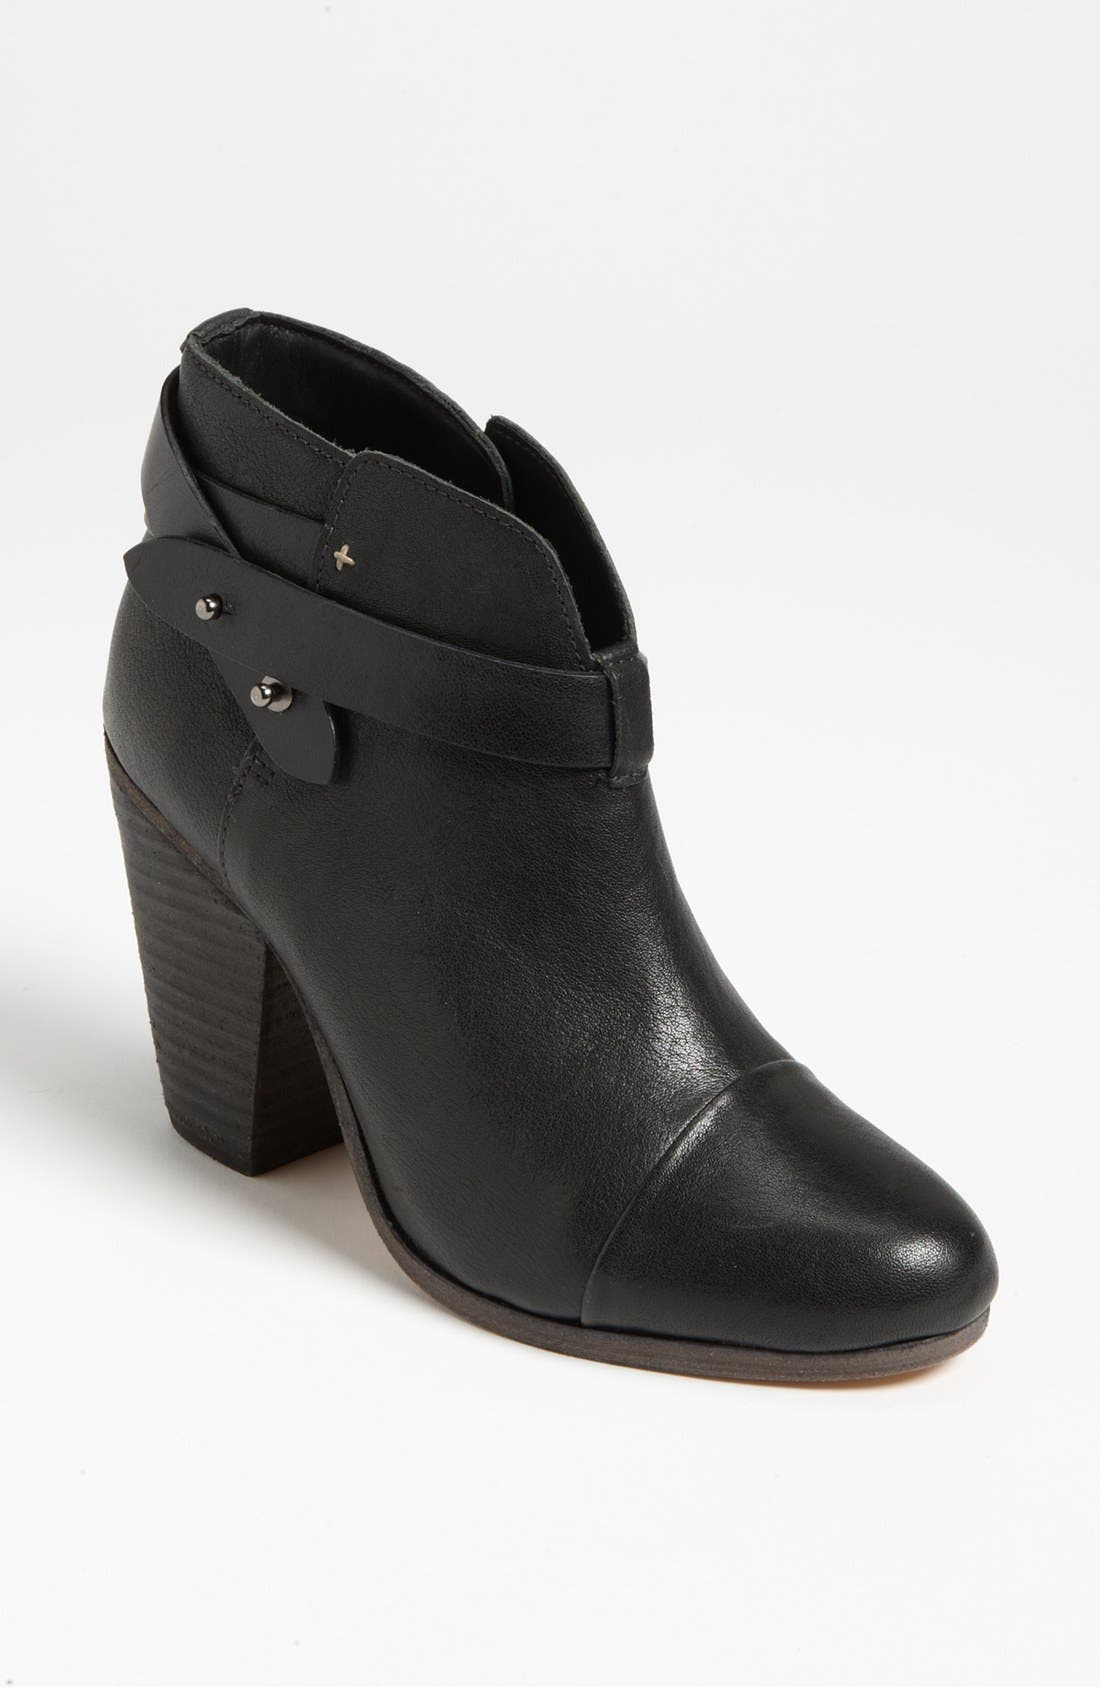 Main Image - rag & bone 'Harrow' Leather Boot